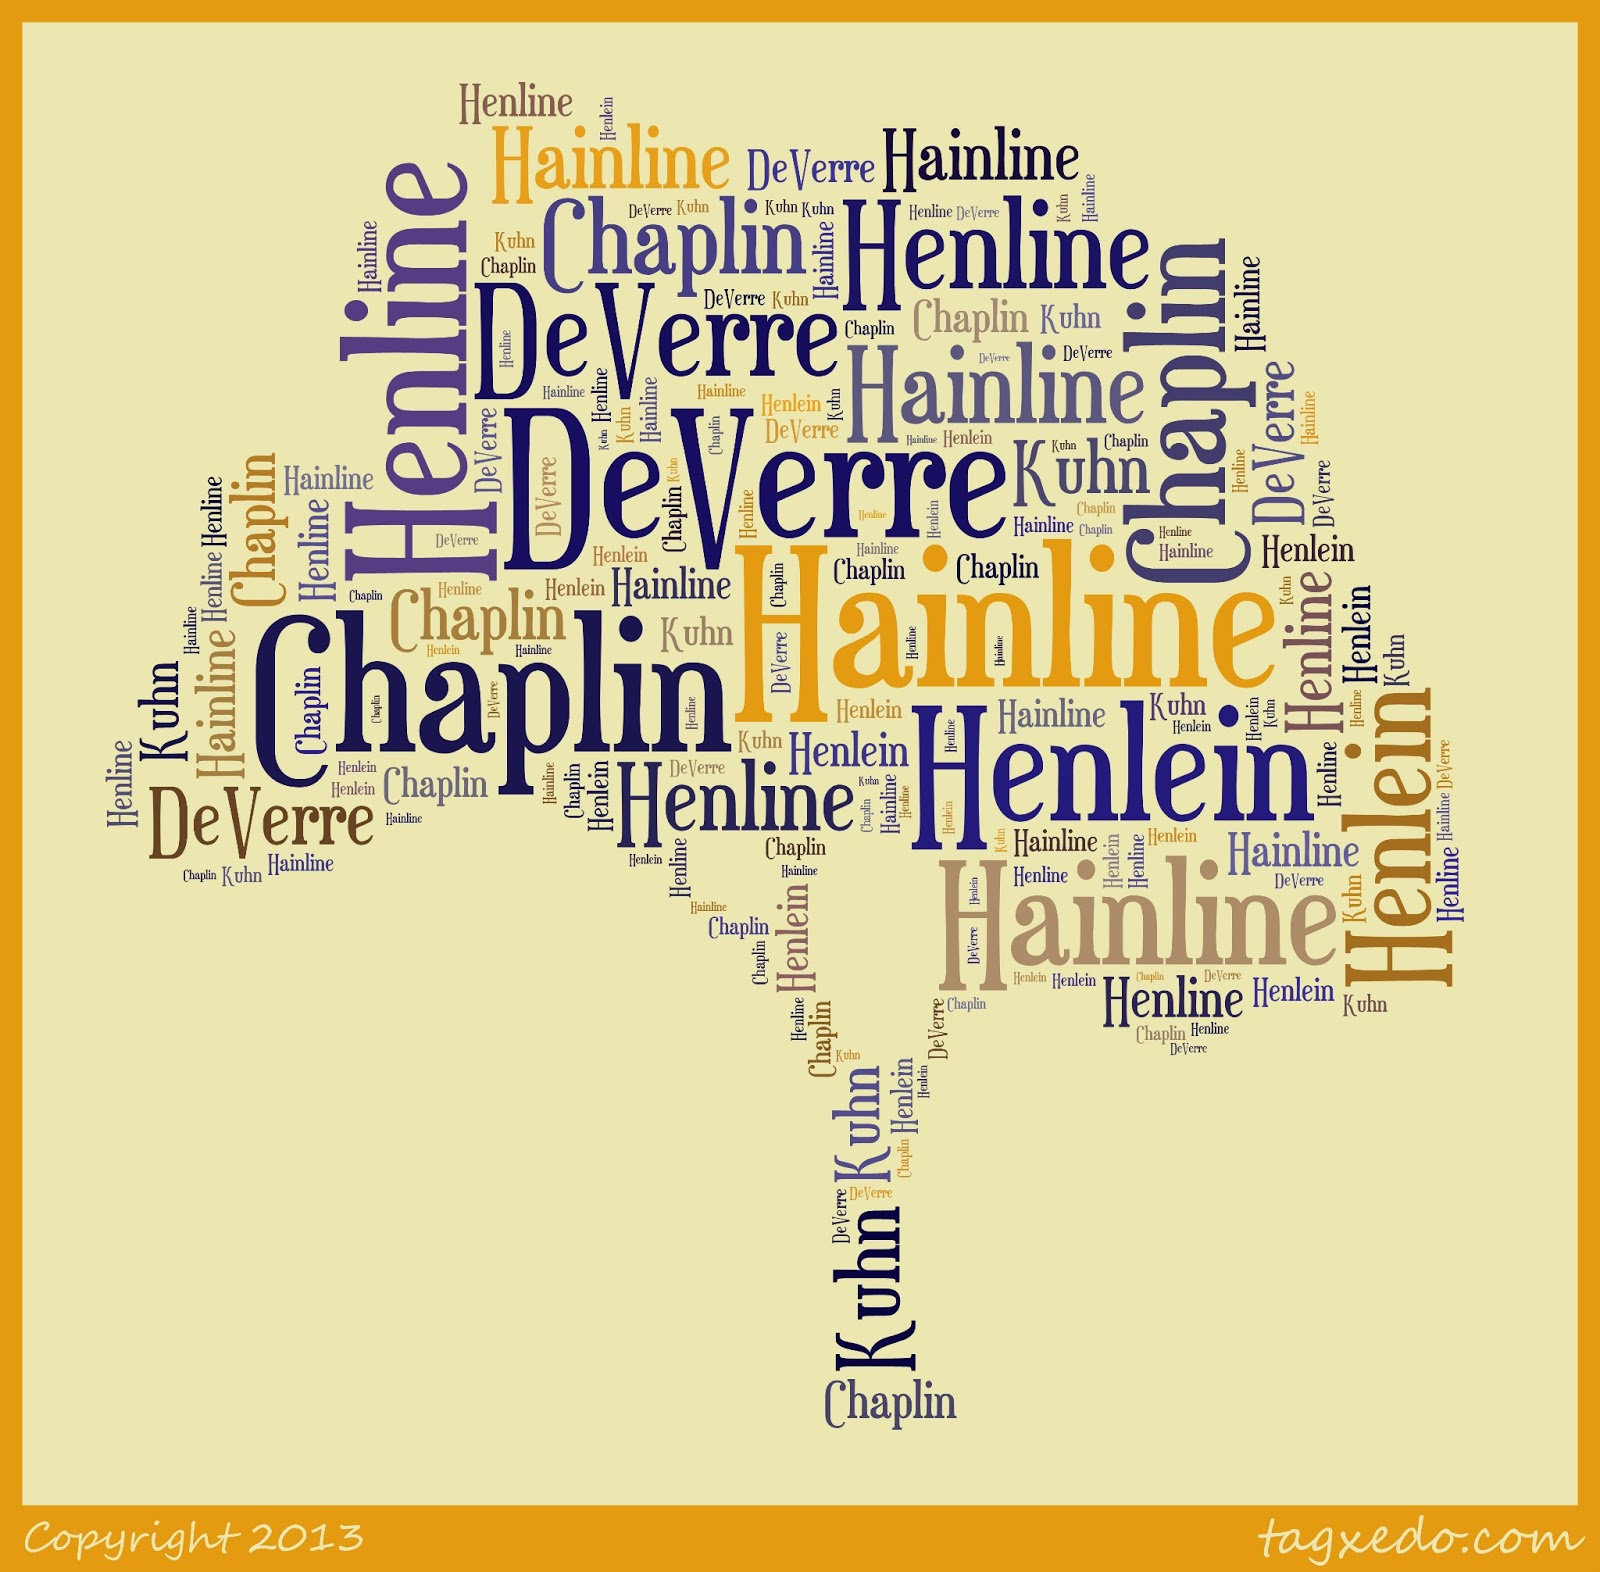 The HAINLINE Name Originated As German HENLEIN This Family Was Located In Area Known Palatinate Or Pfaltz Germany